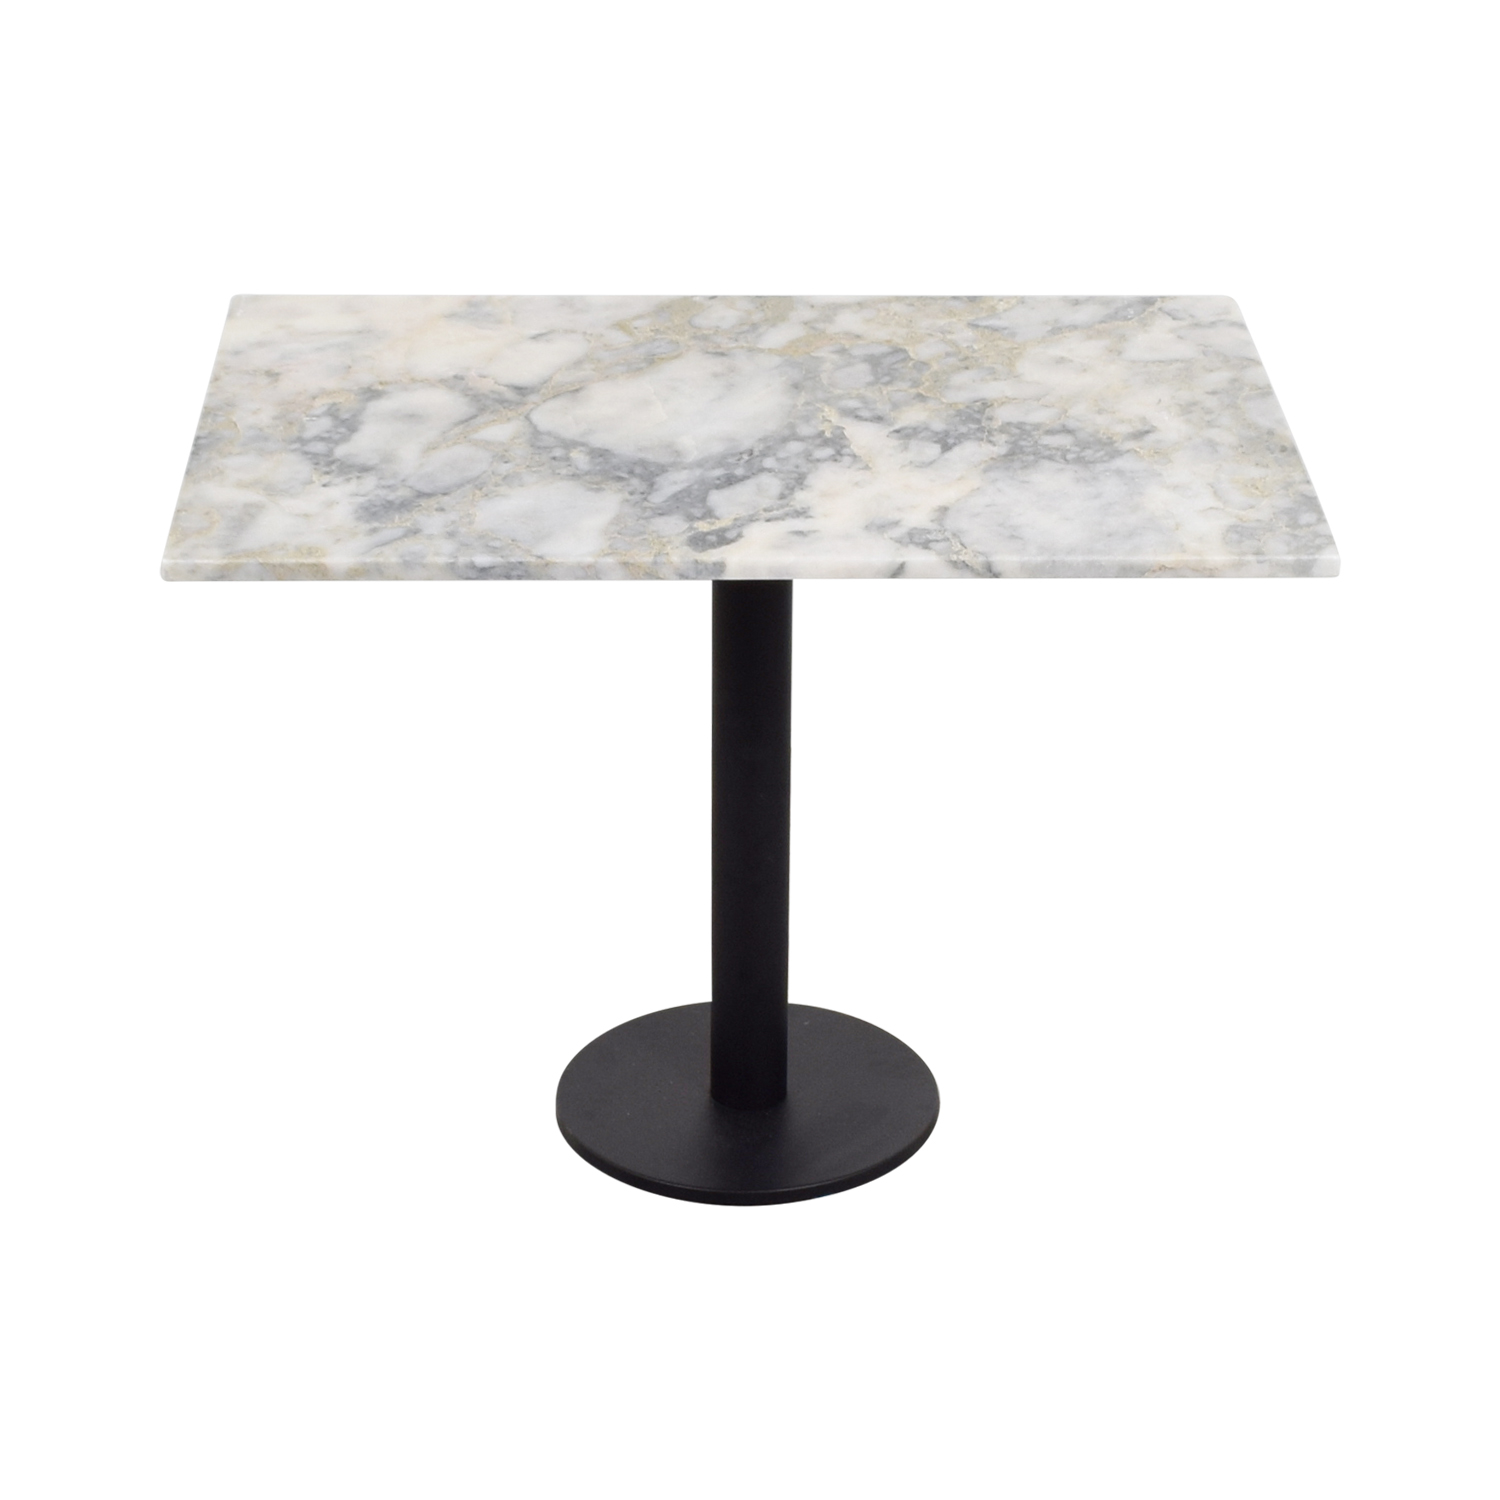 Lotus Lotus White and Gray Rectangular Marble Table discount